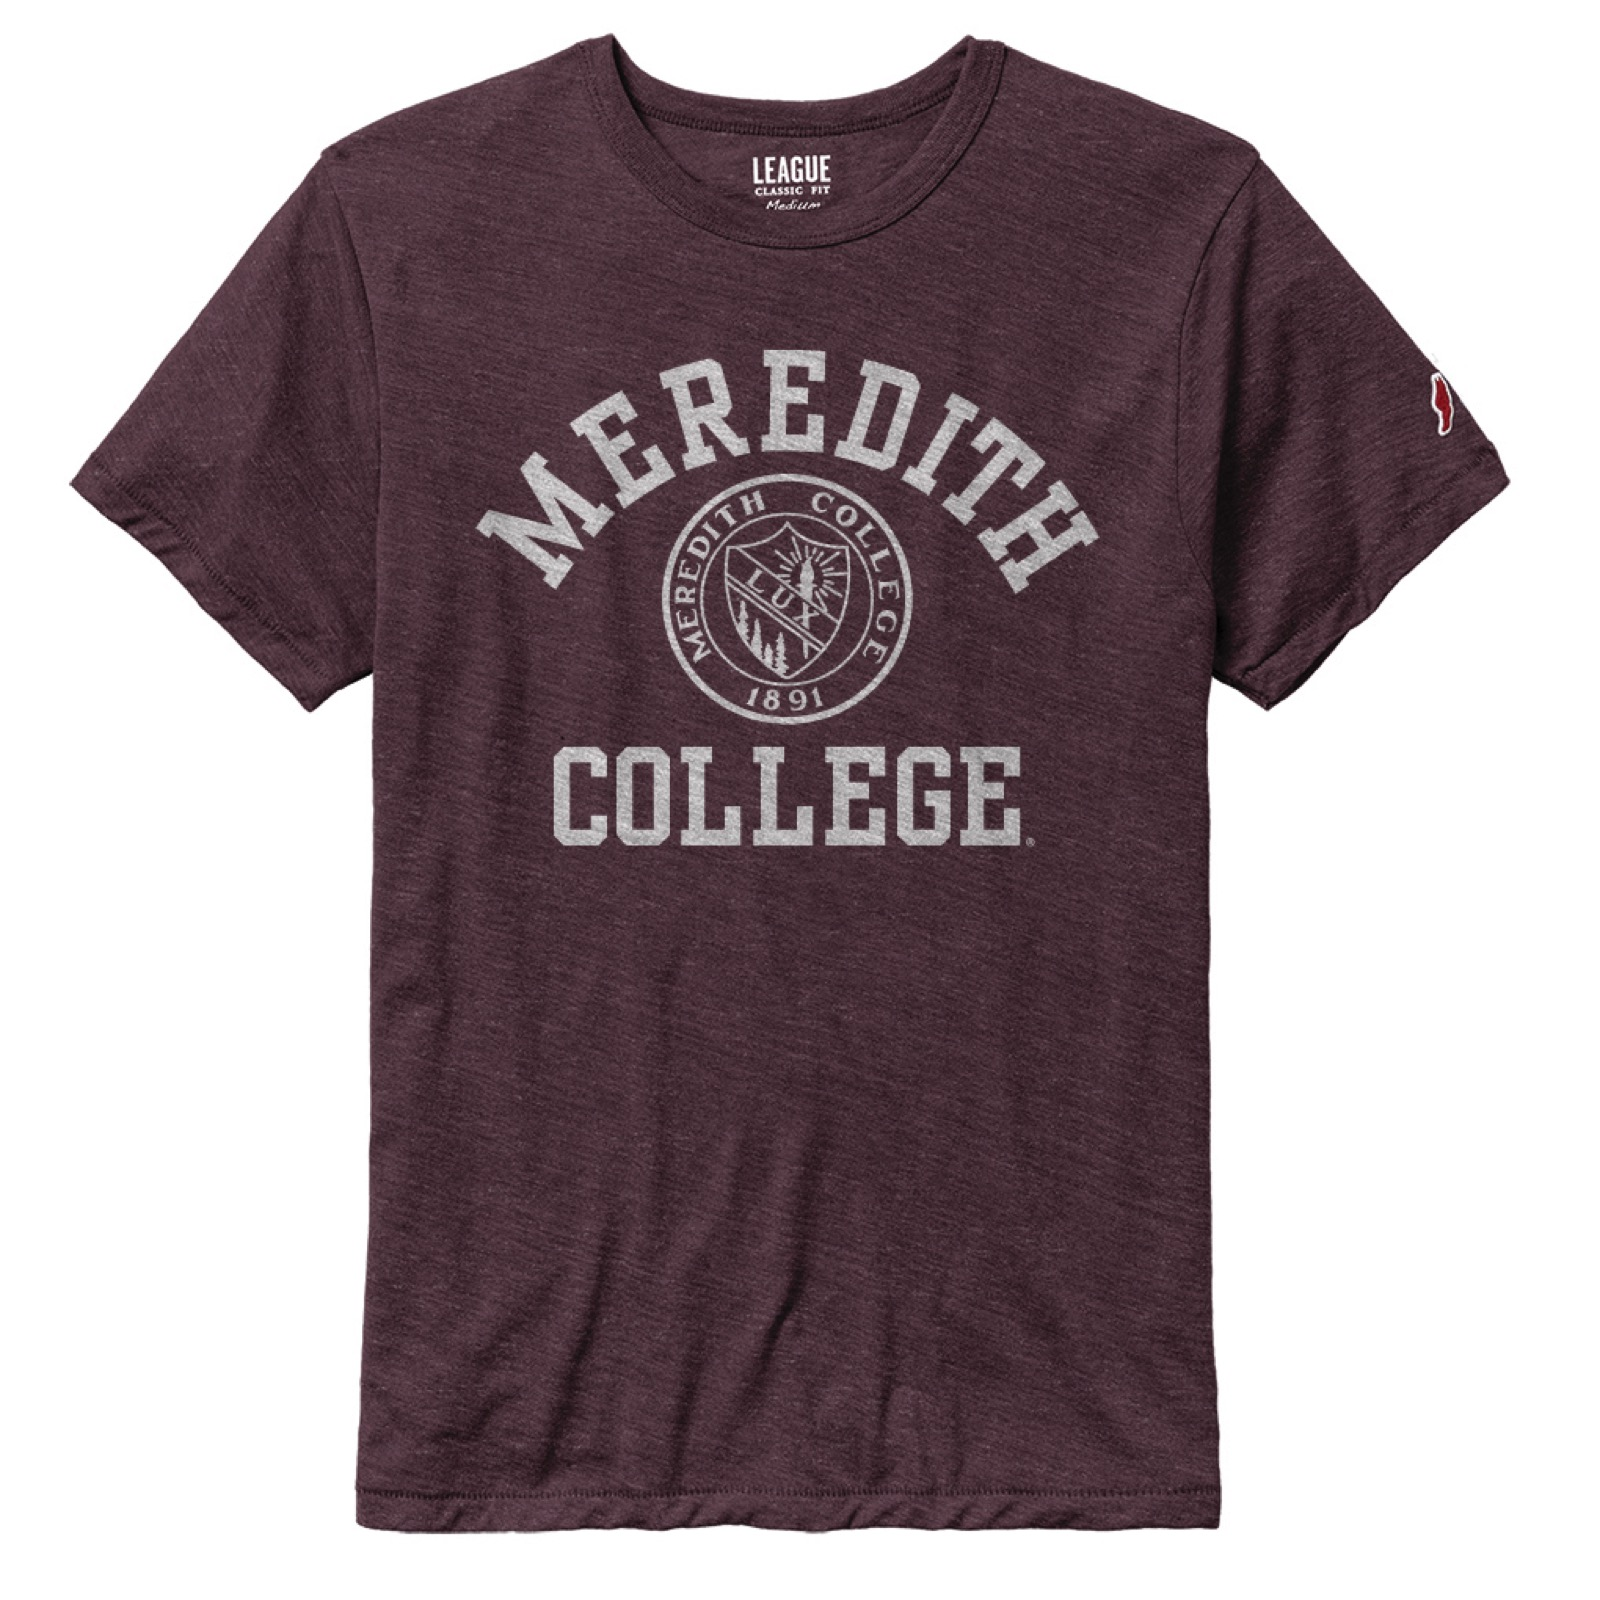 Image for the T-Shirt Varsity Heather Maroon League MC w/Seal product